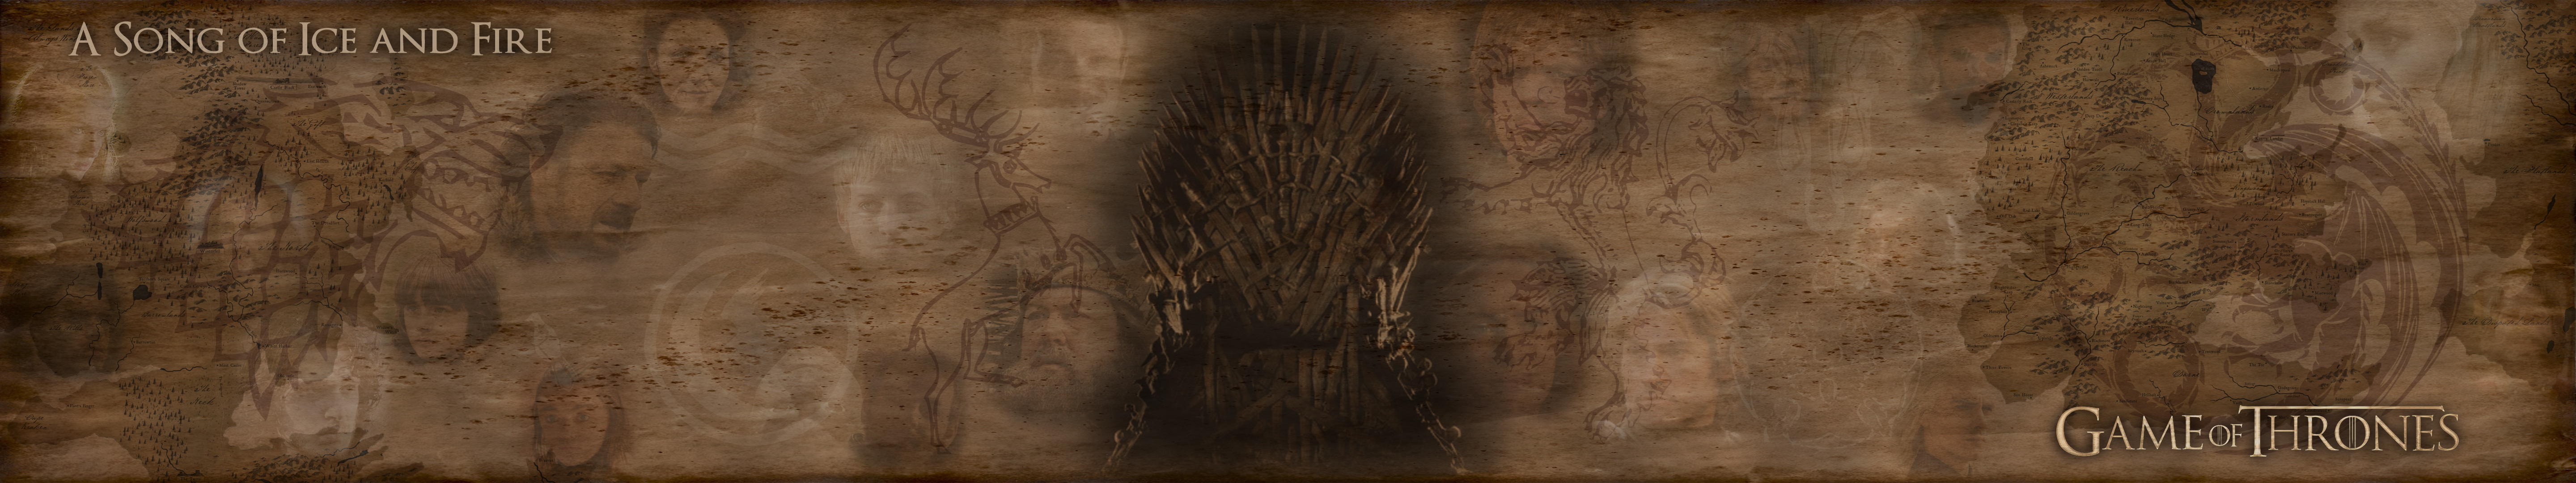 Free Download Game Of Thrones Triscreen 01 By Base113 5760x1080